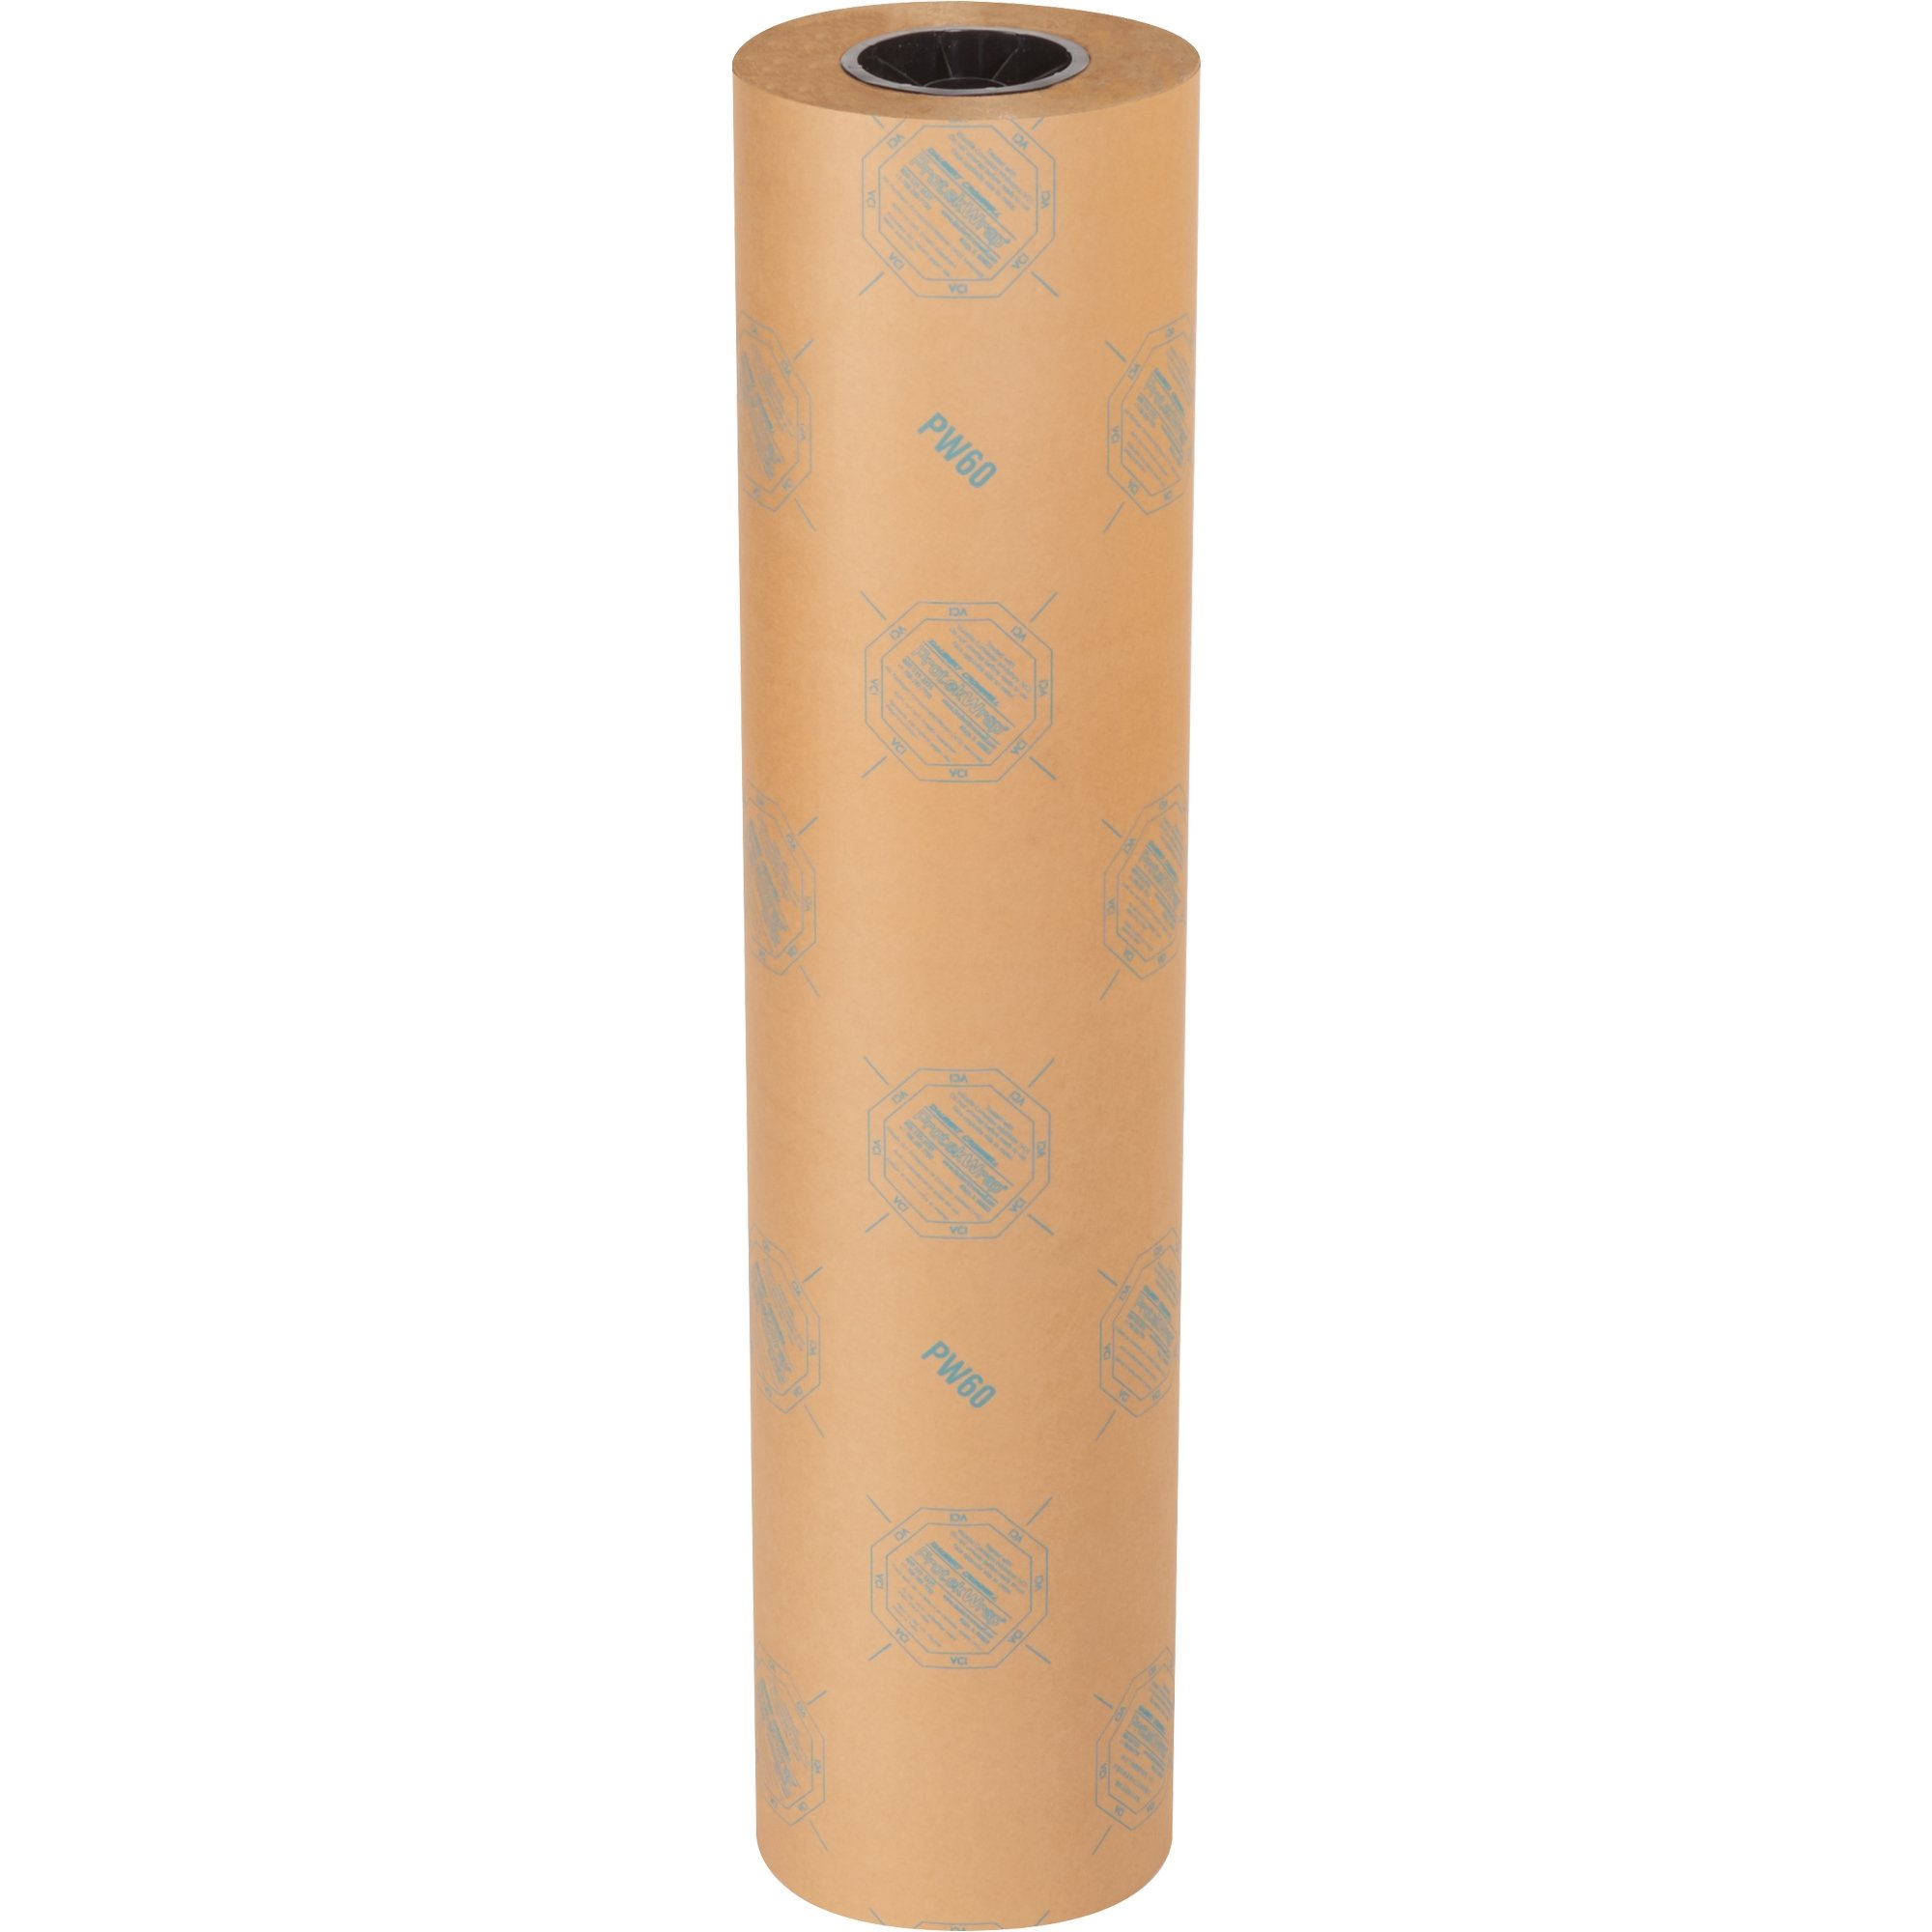 VCI Paper, Waxed Industrial Rolls, 60#, 36'' x 200 yds, Kraft, 1/Case by Choice Shipping Supplies